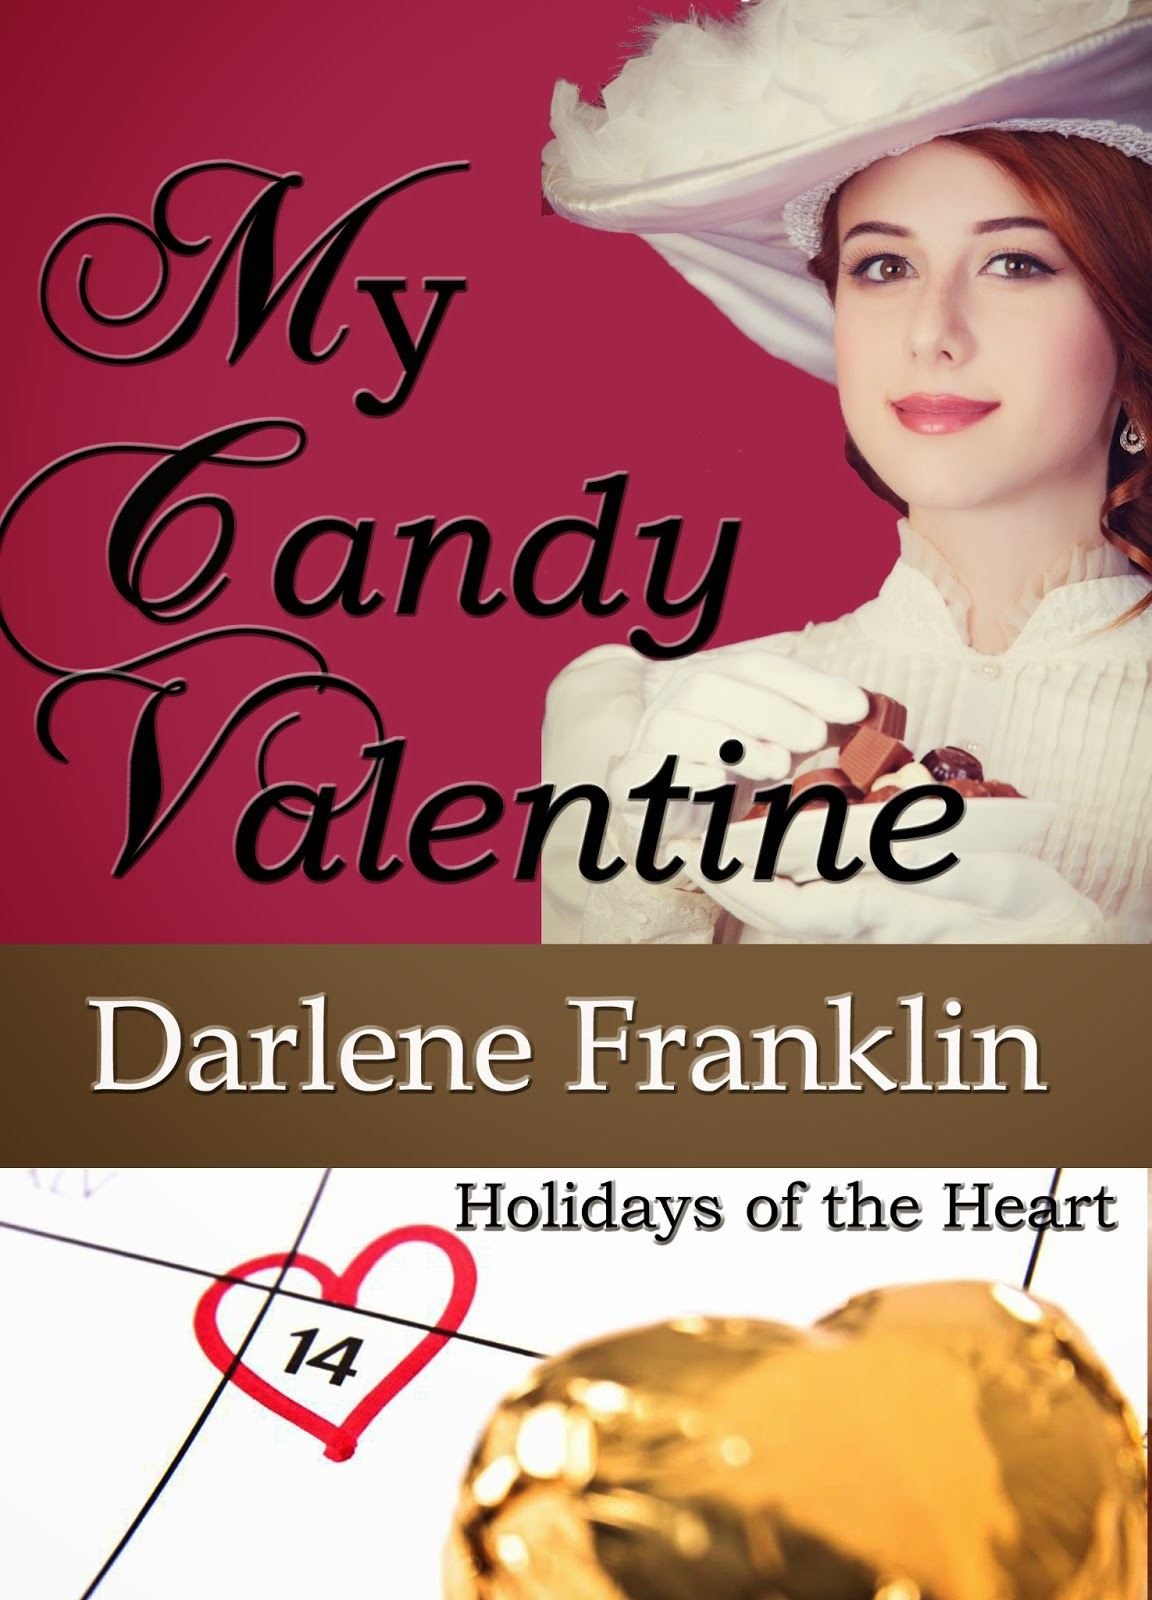 http://www.amazon.com/Candy-Valentine-Holidays-Heart-Book-ebook/dp/B00SI2214K/ref=sr_1_1?s=books&ie=UTF8&qid=1423679865&sr=1-1&keywords=my+candy+valentine+darlene+franklin